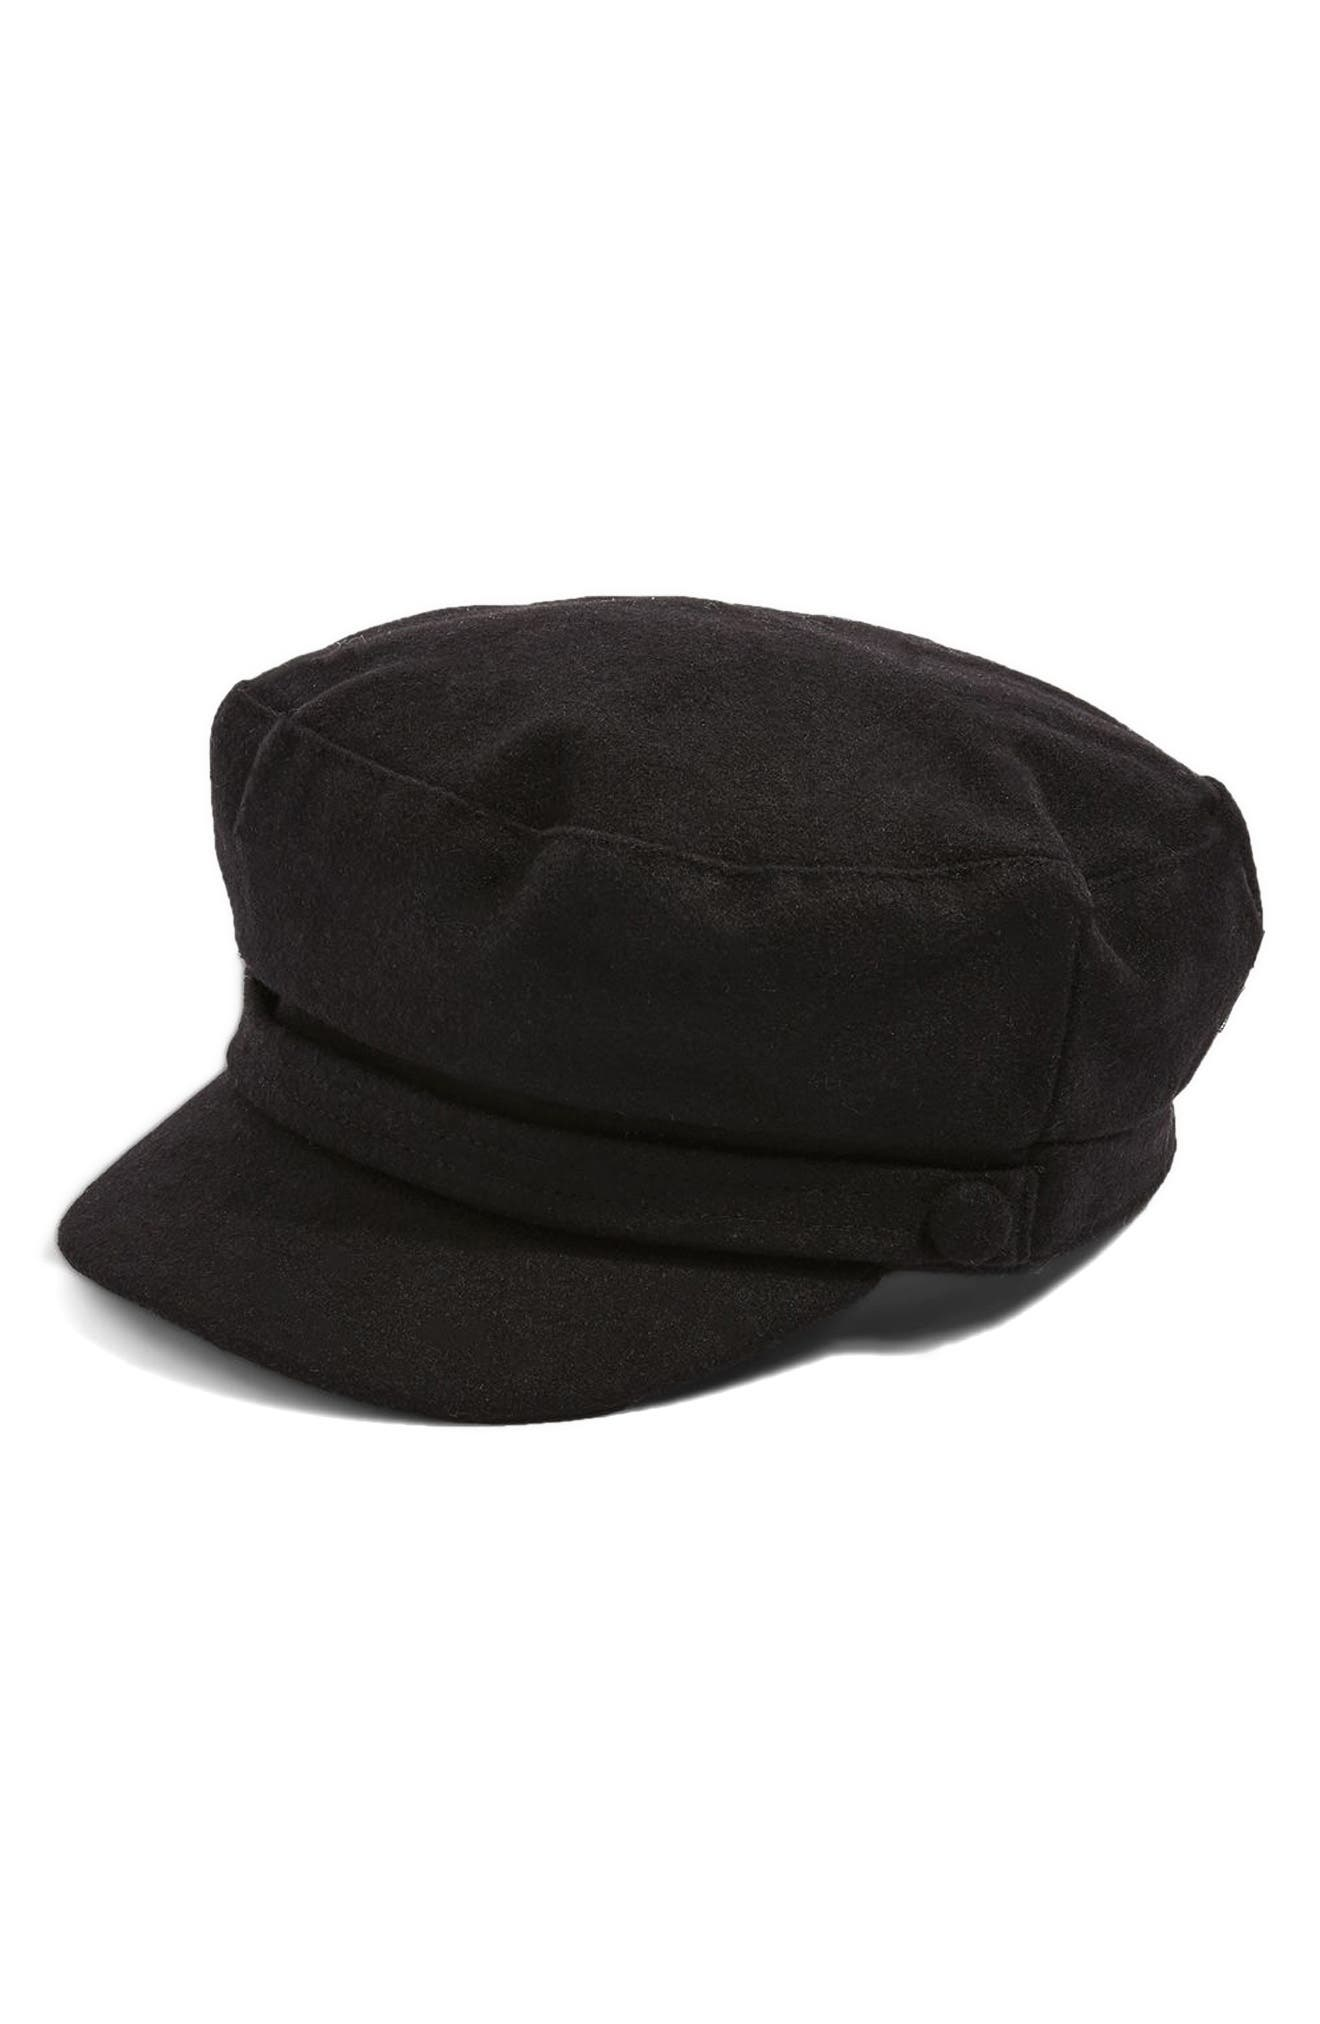 Alternate Image 1 Selected - Topshop Baker Boy Cap